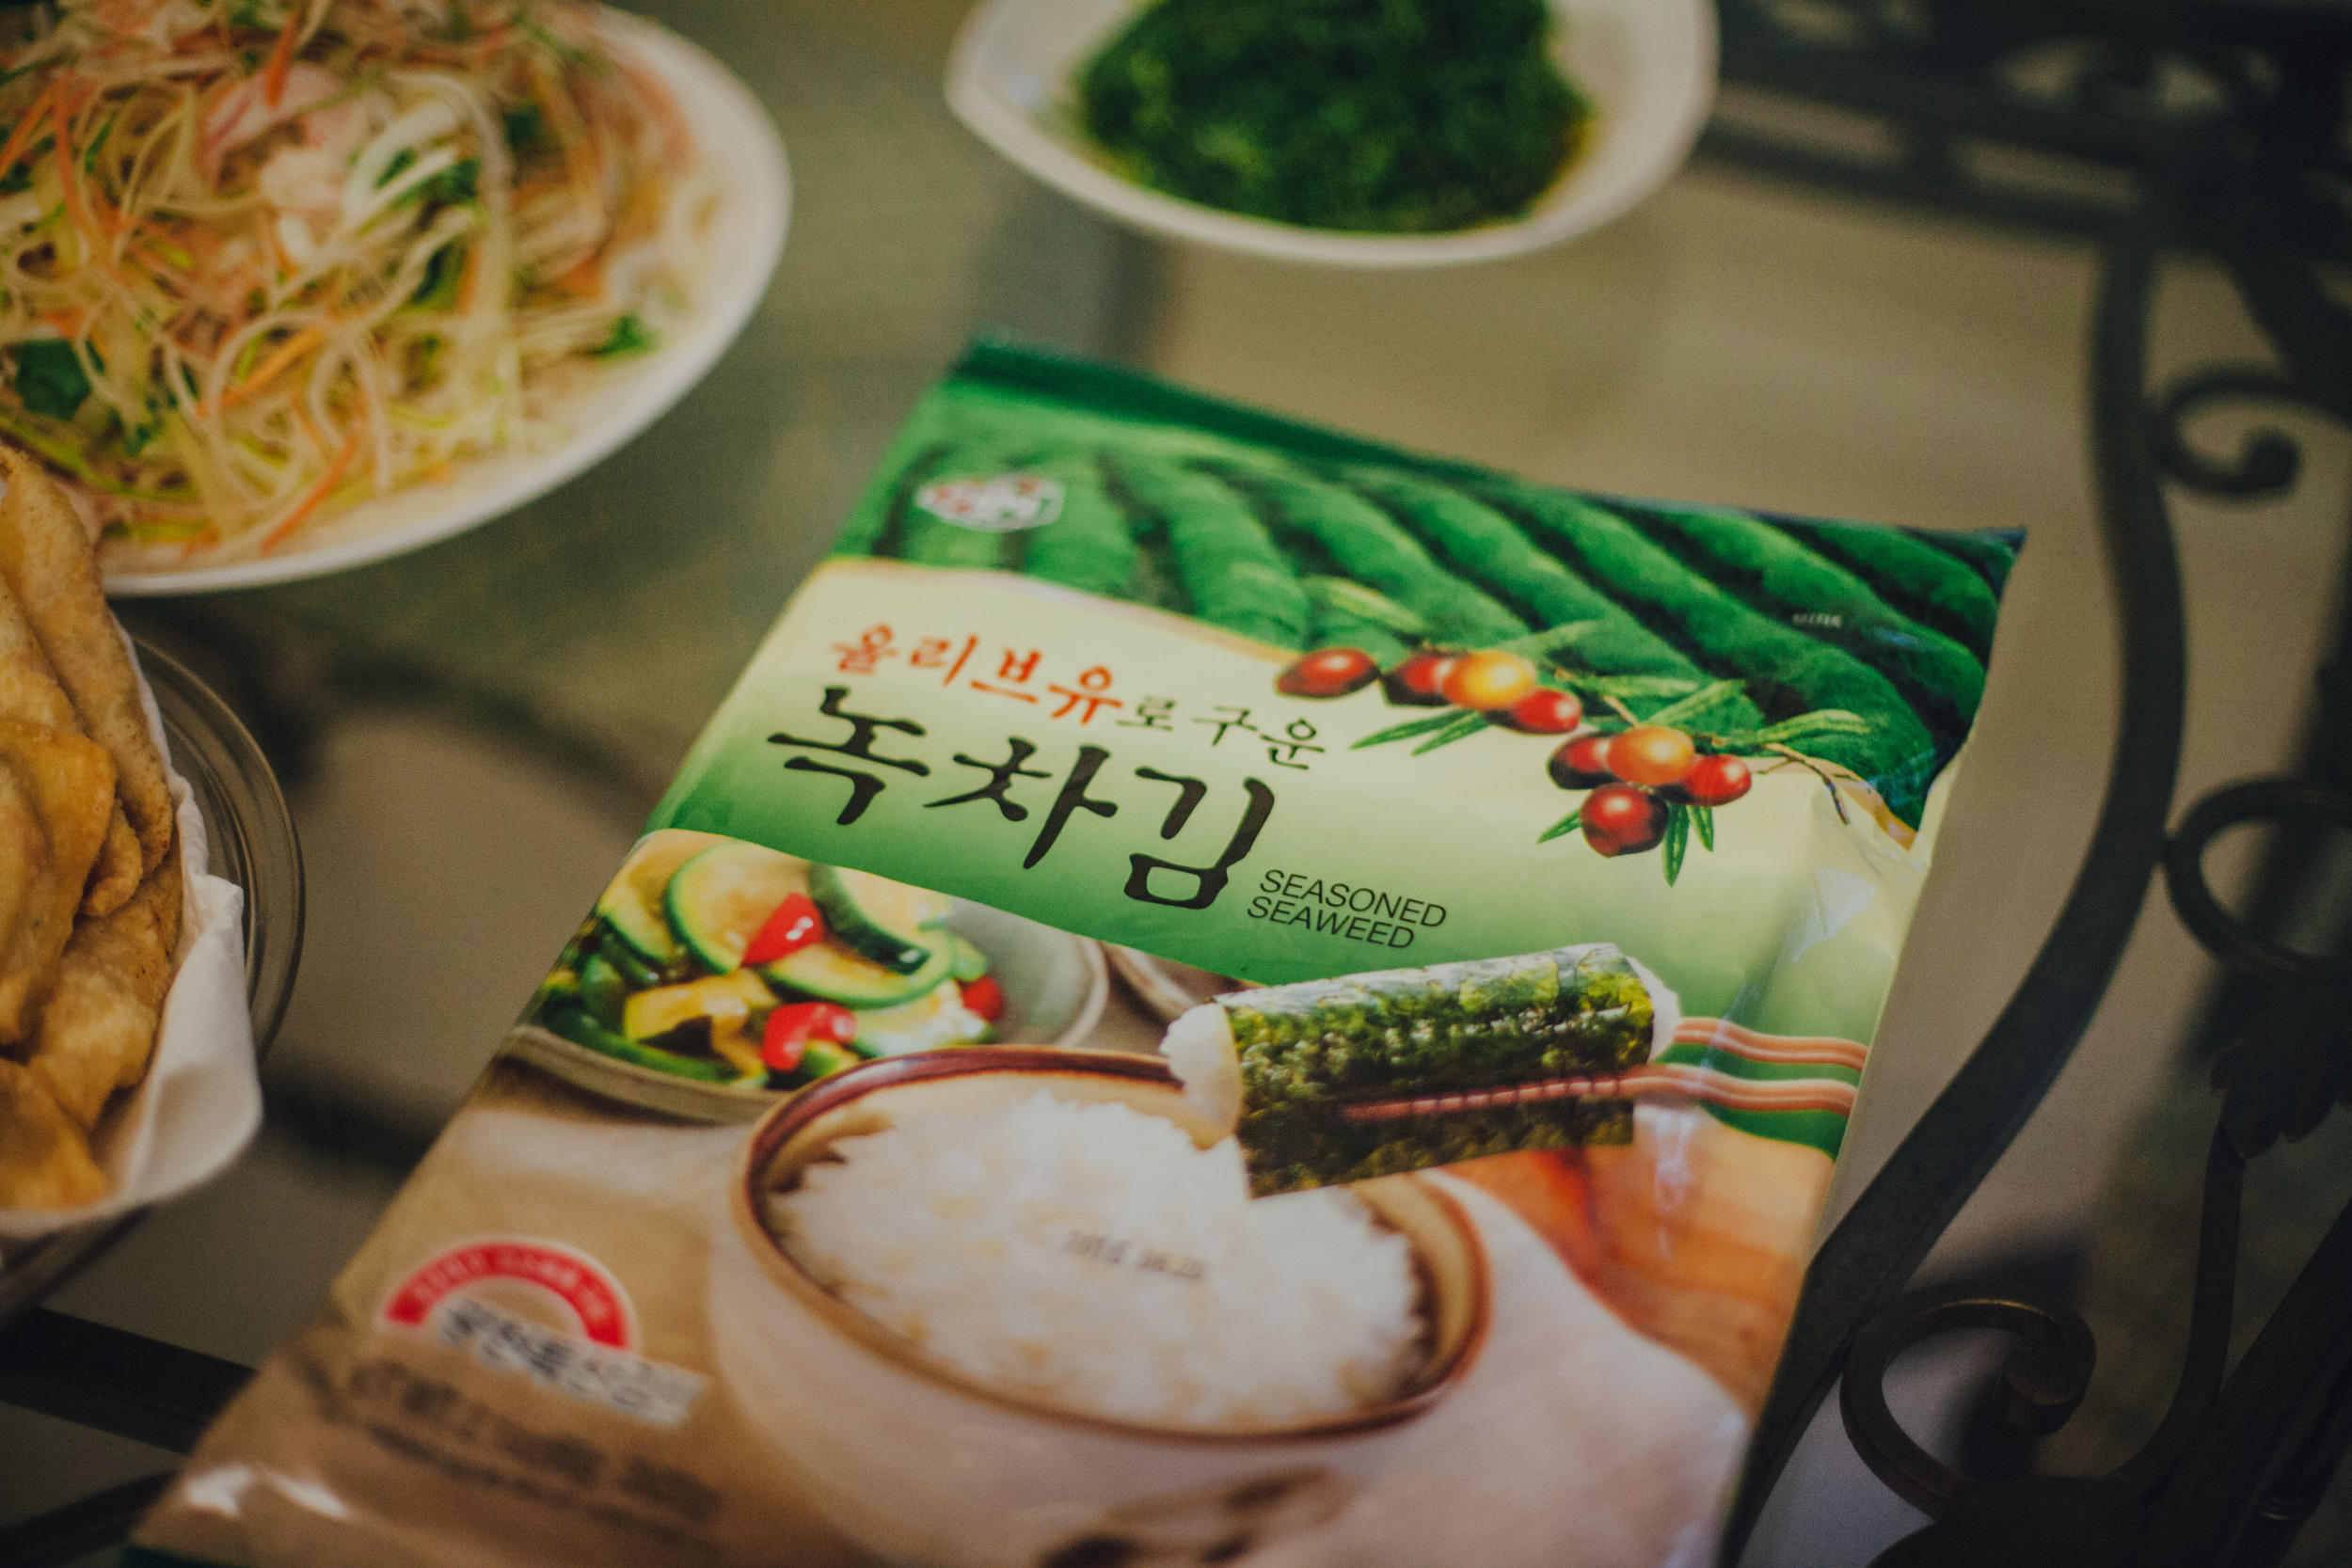 Our favorite brand of seasoned seaweed - so good!